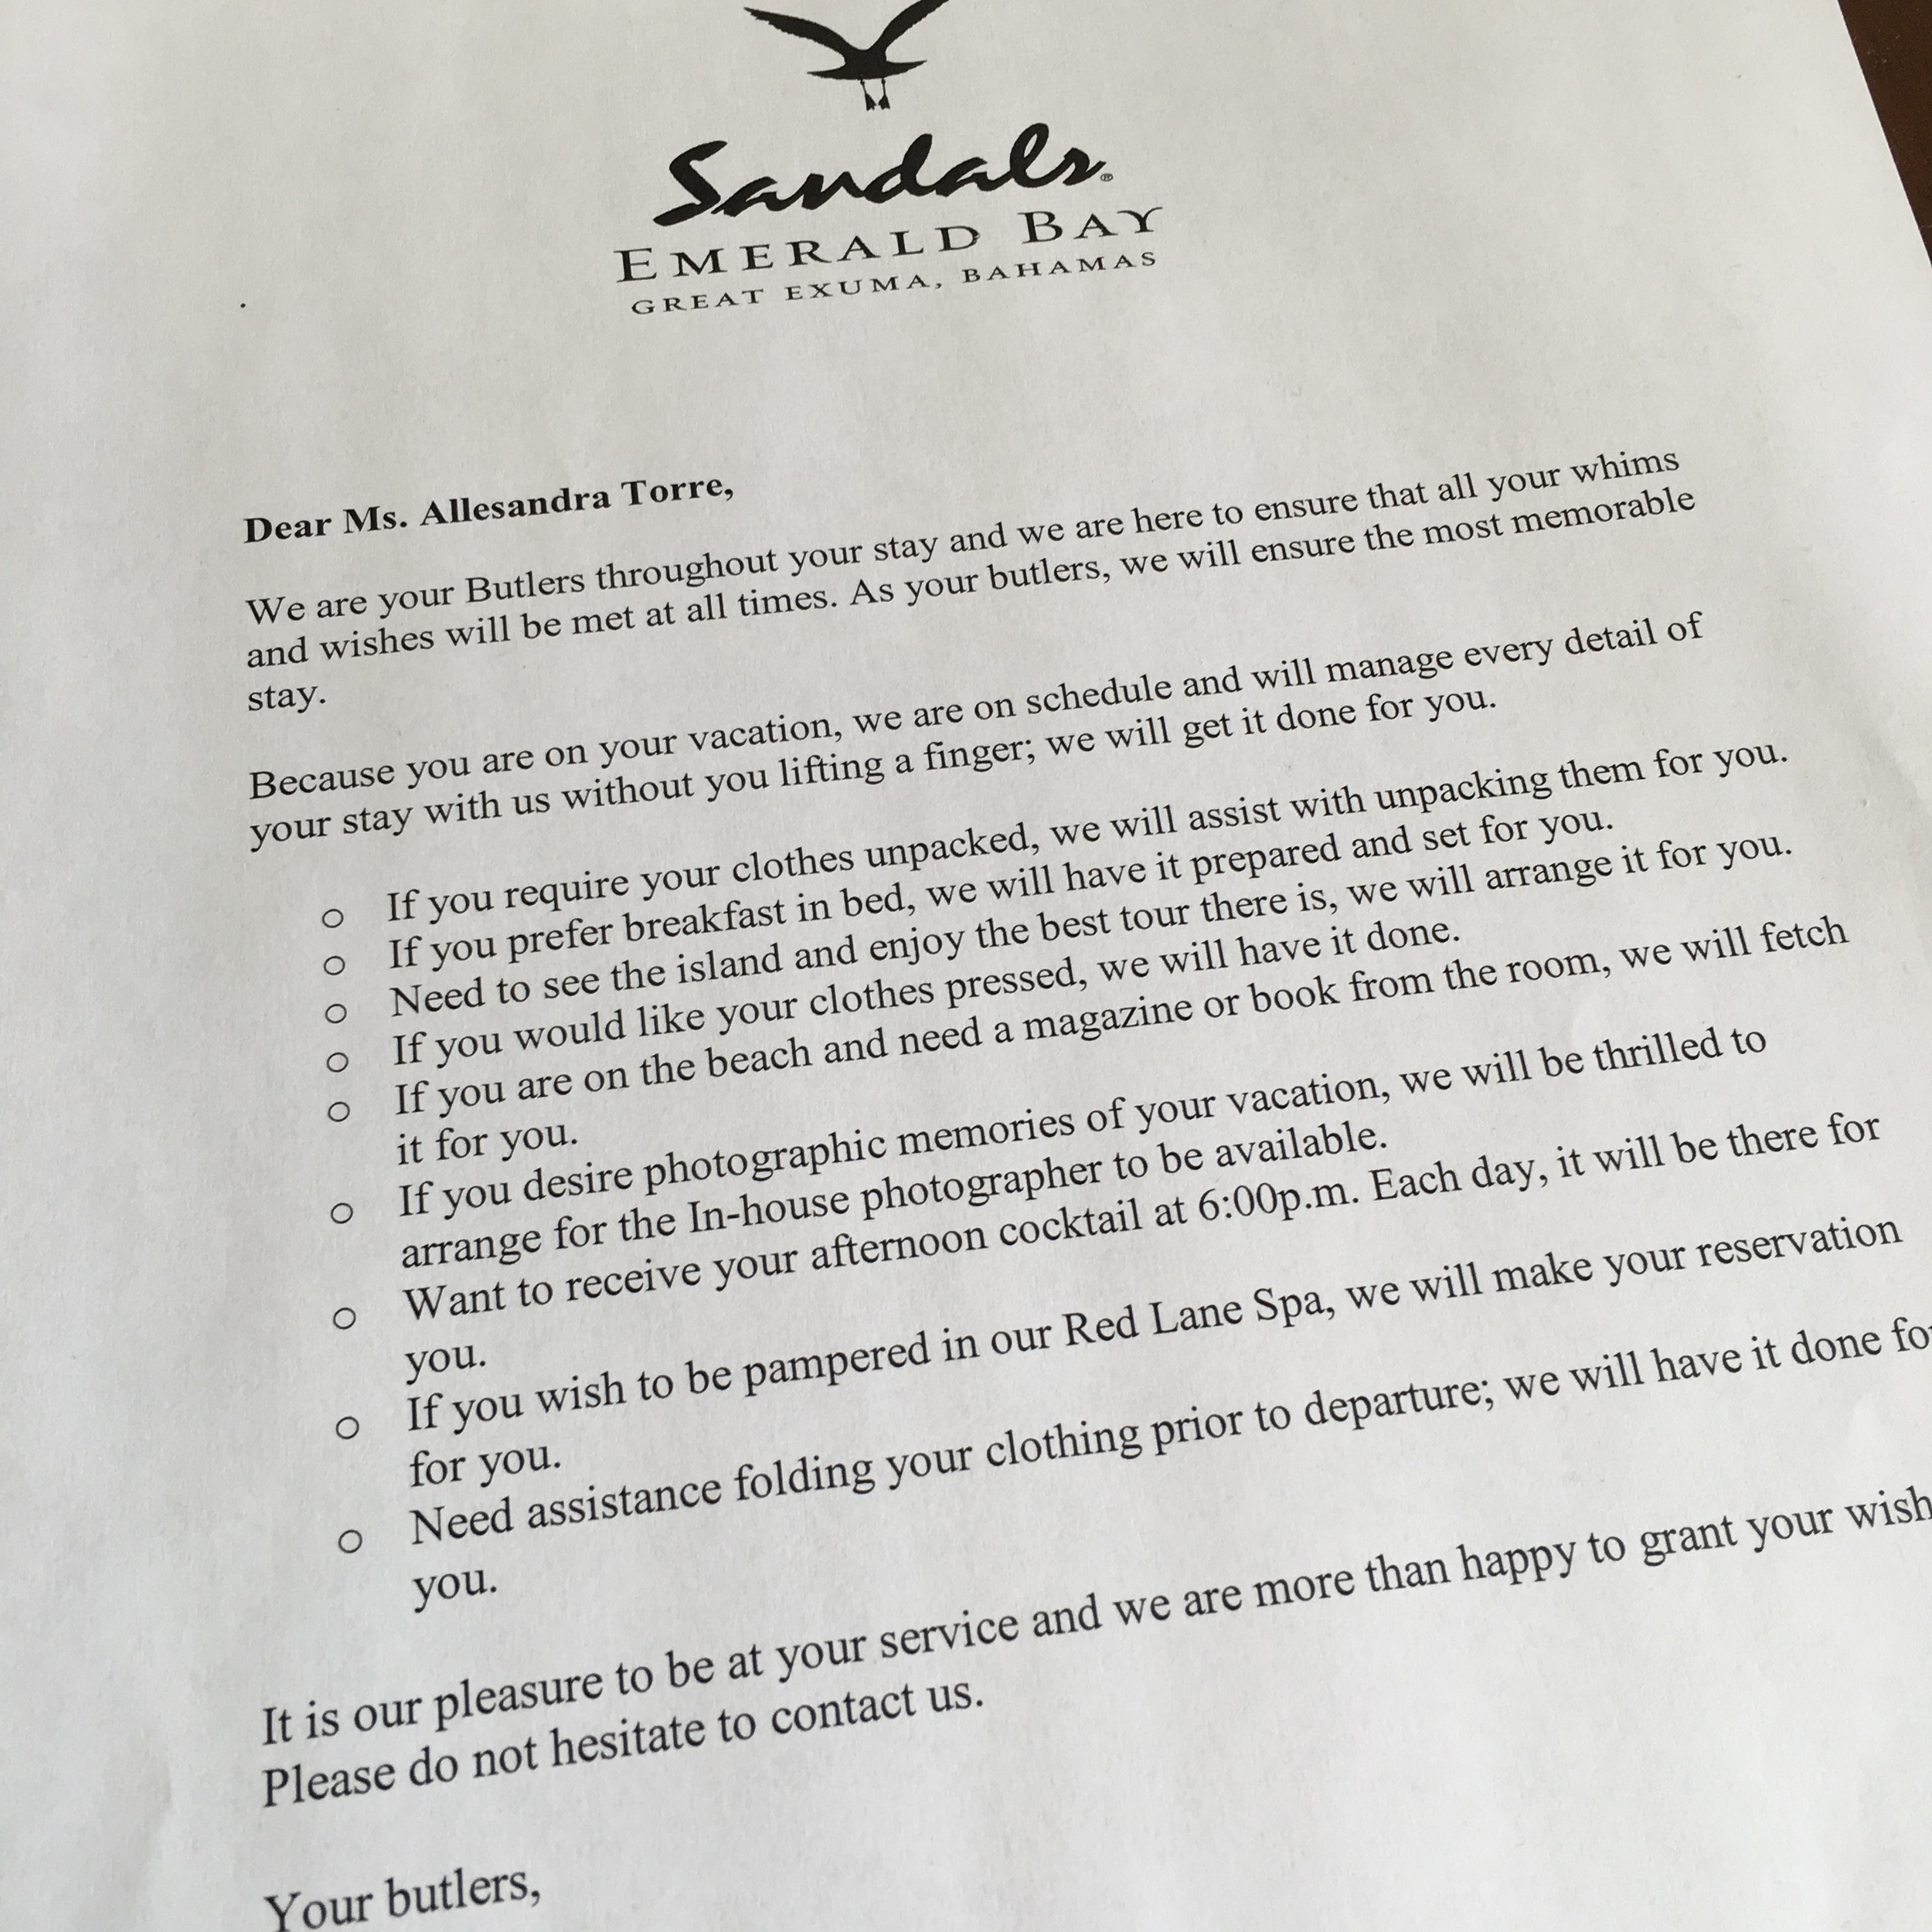 The letter from our Butlers